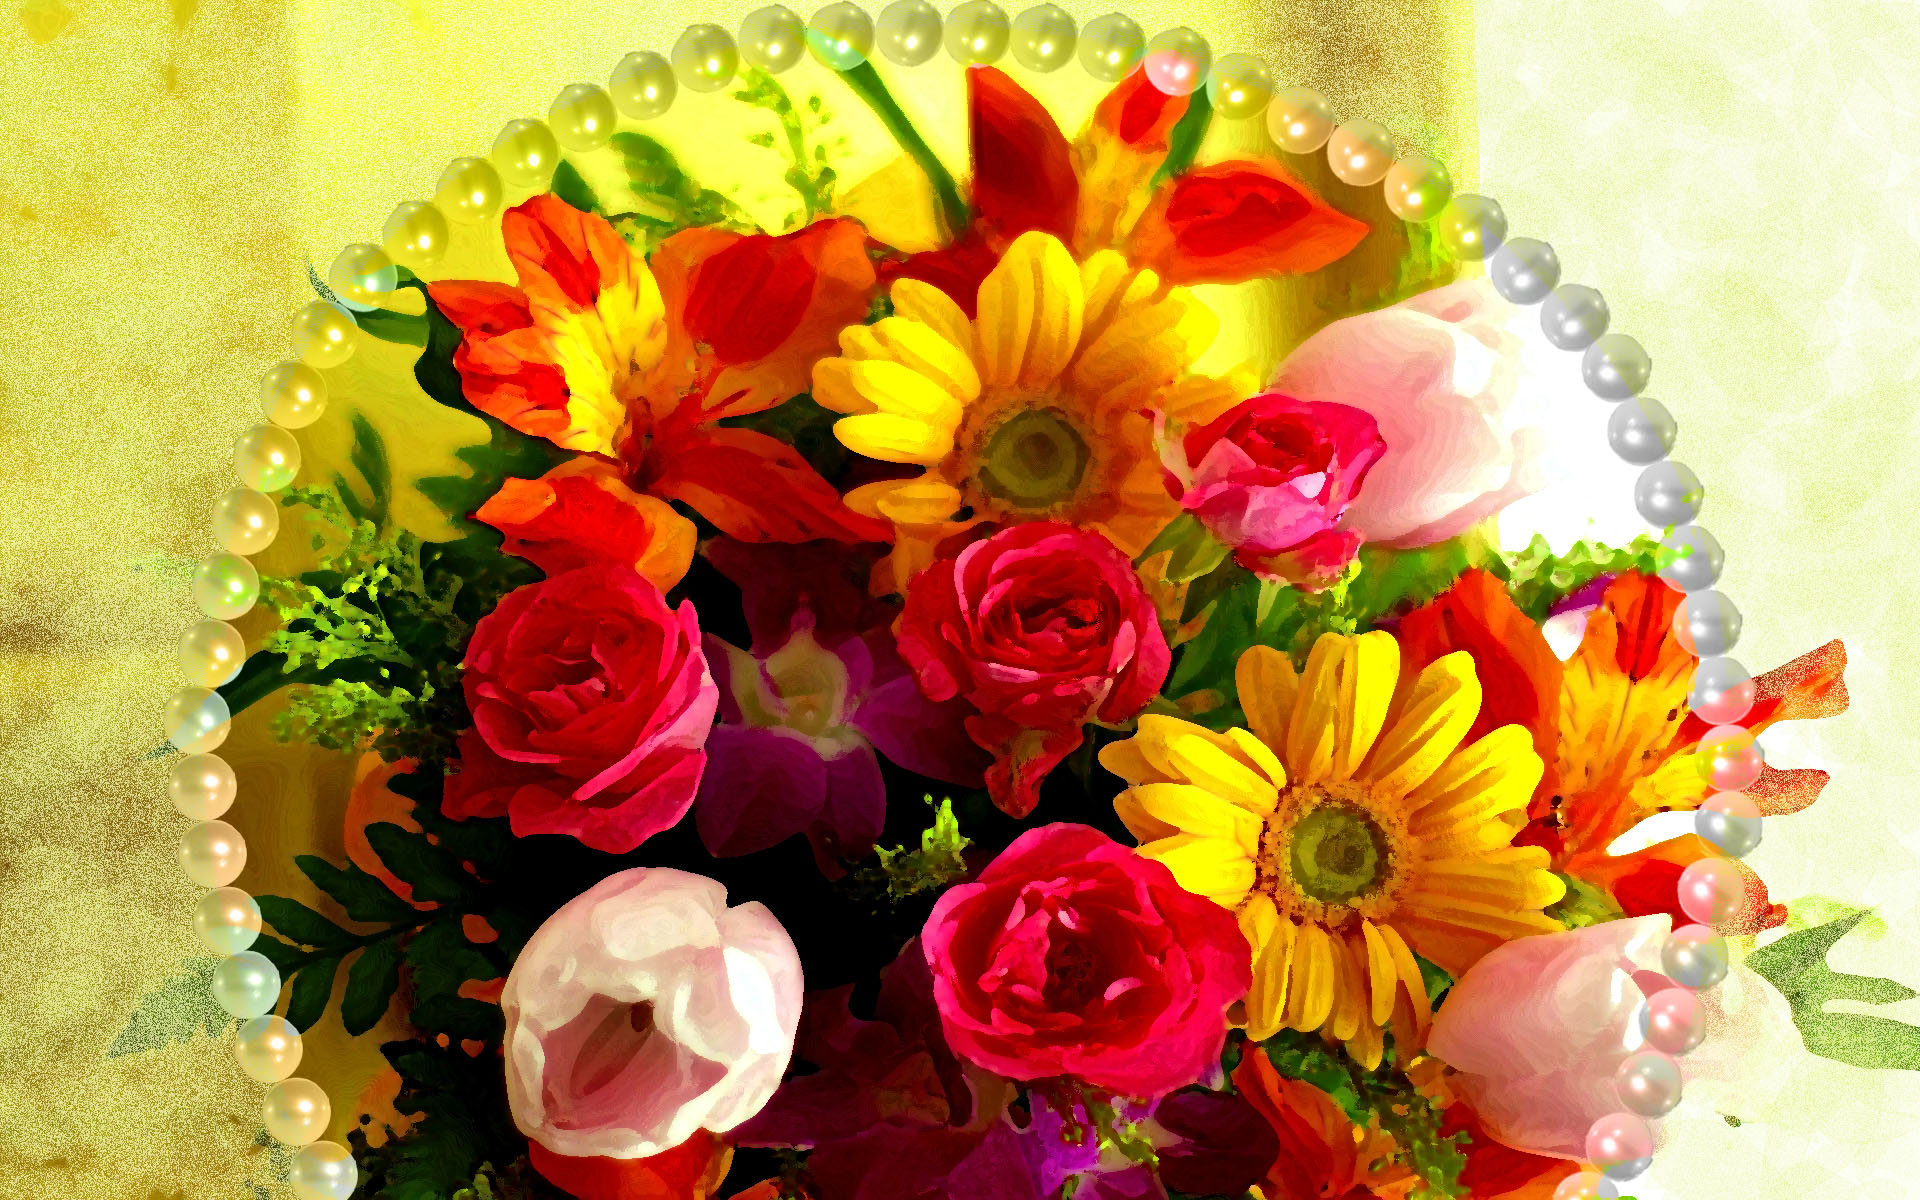 Download most beautiful flowers wallpapers in the world gallery most beautiful flowers wallpapers in the world izmirmasajfo